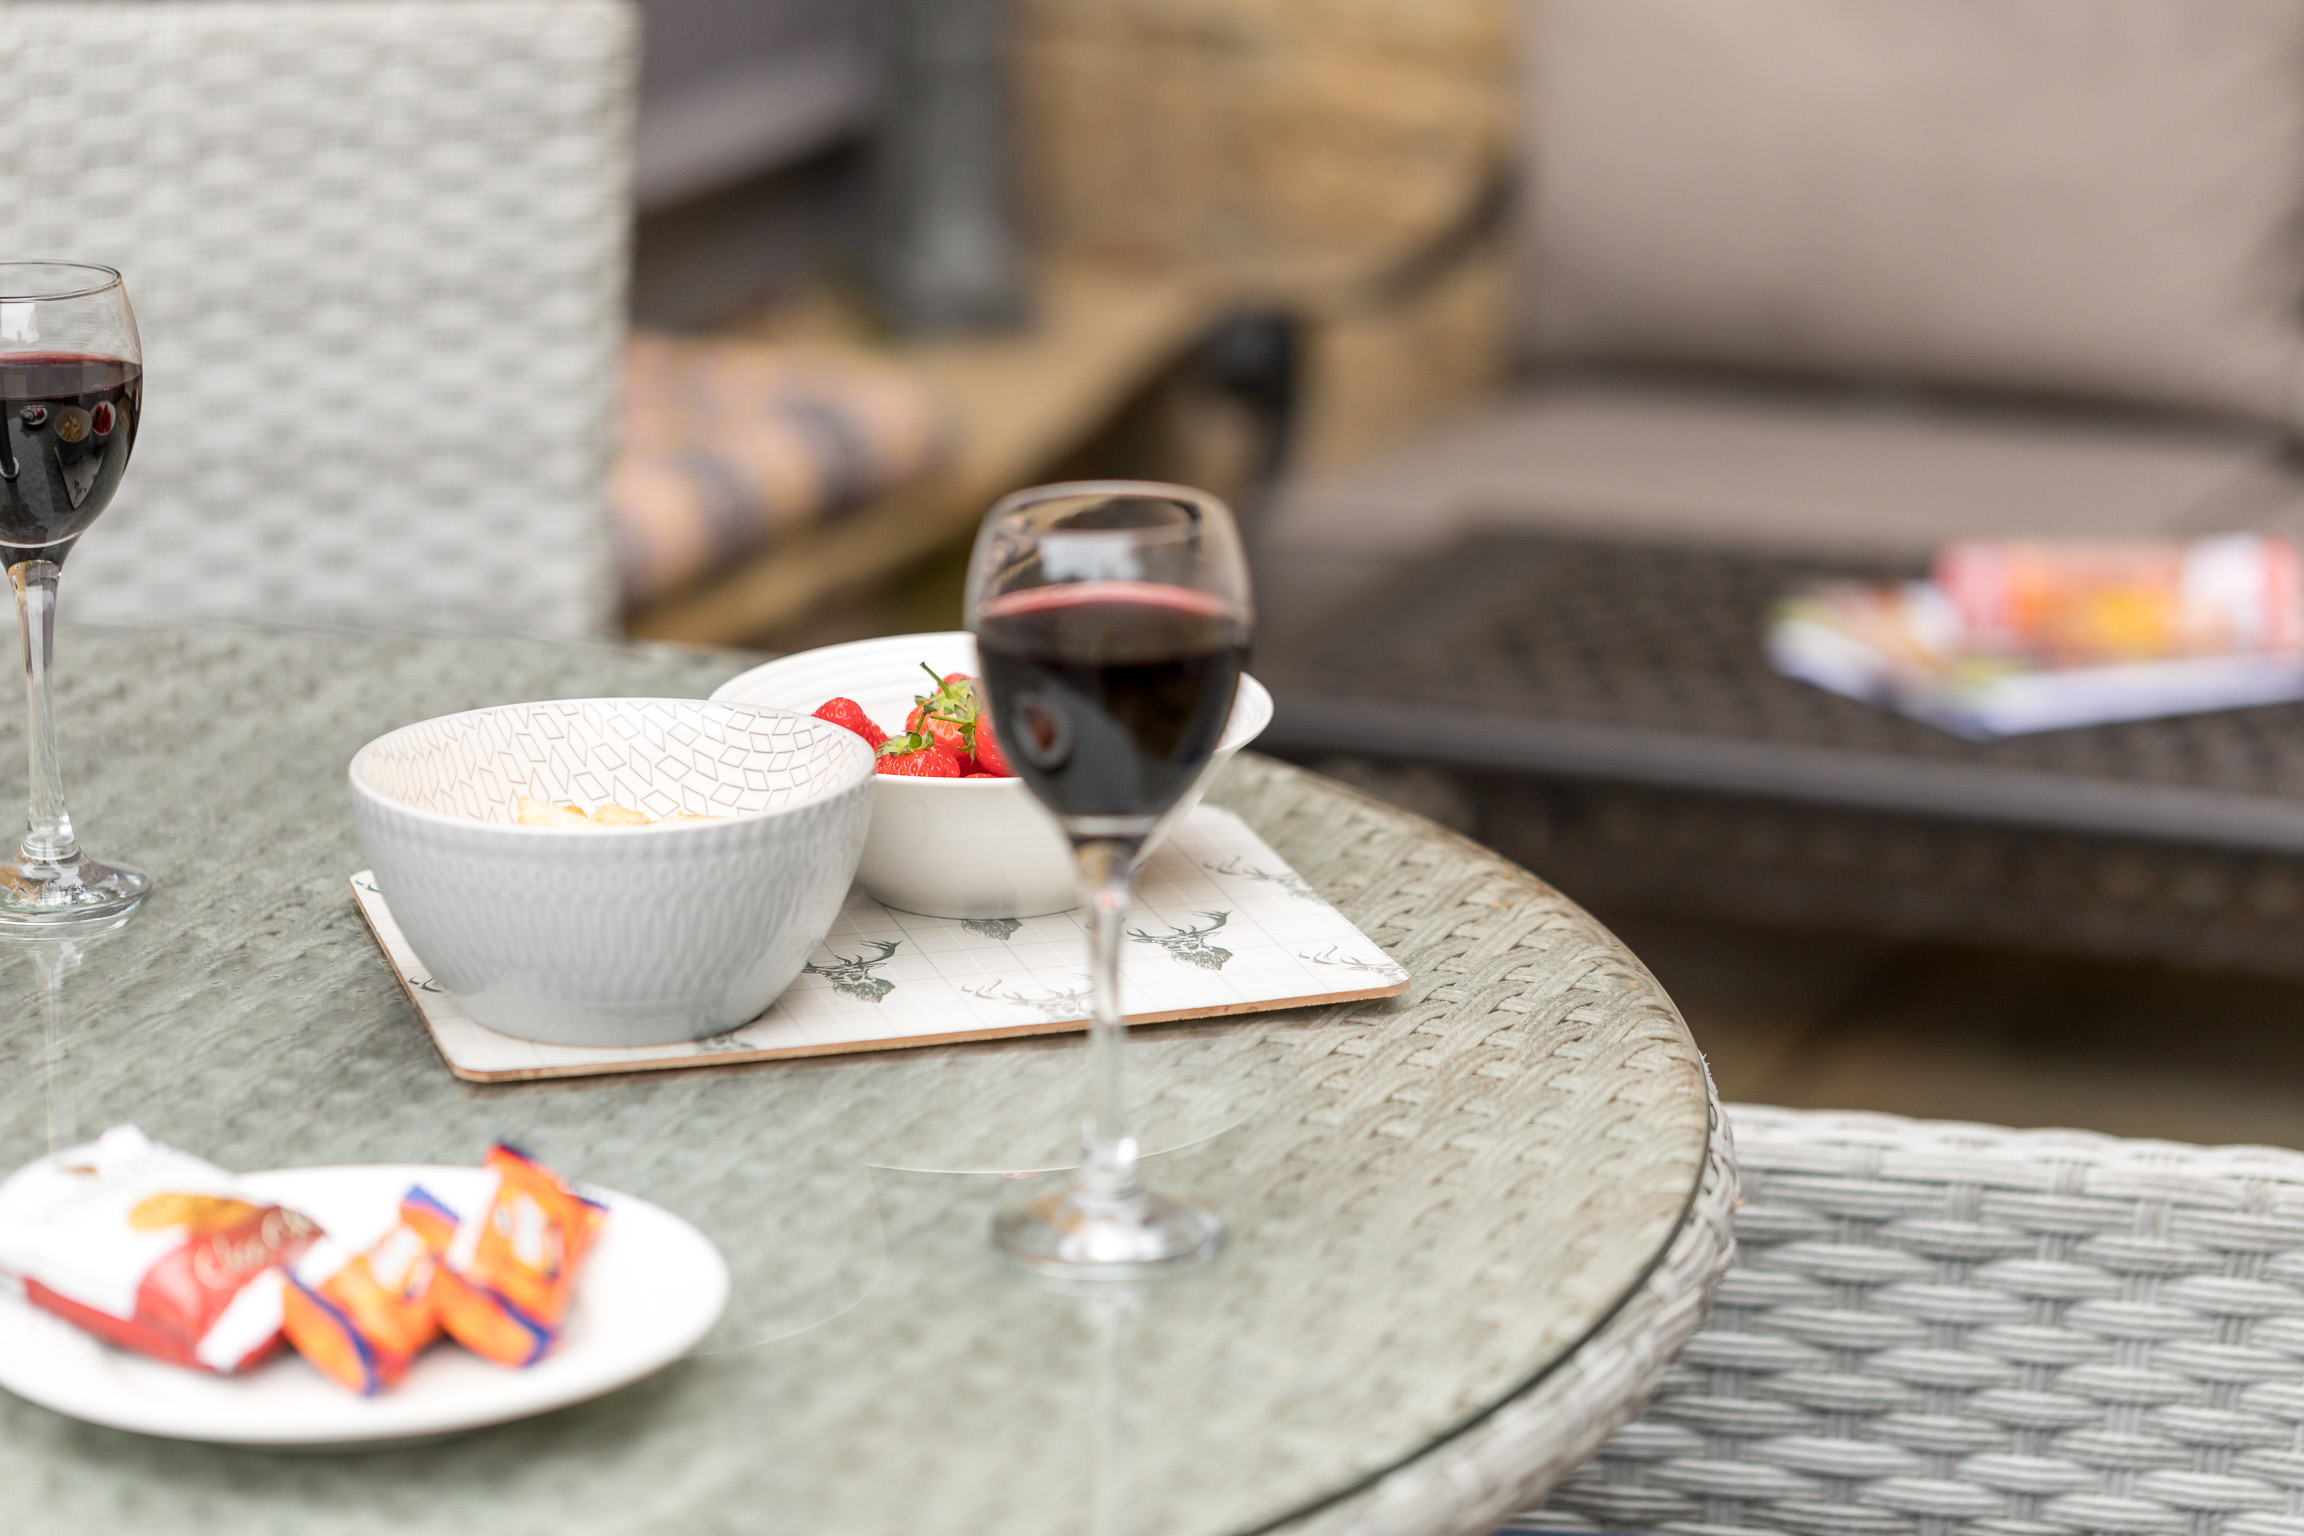 Garden: Everything you need for outdoor dining